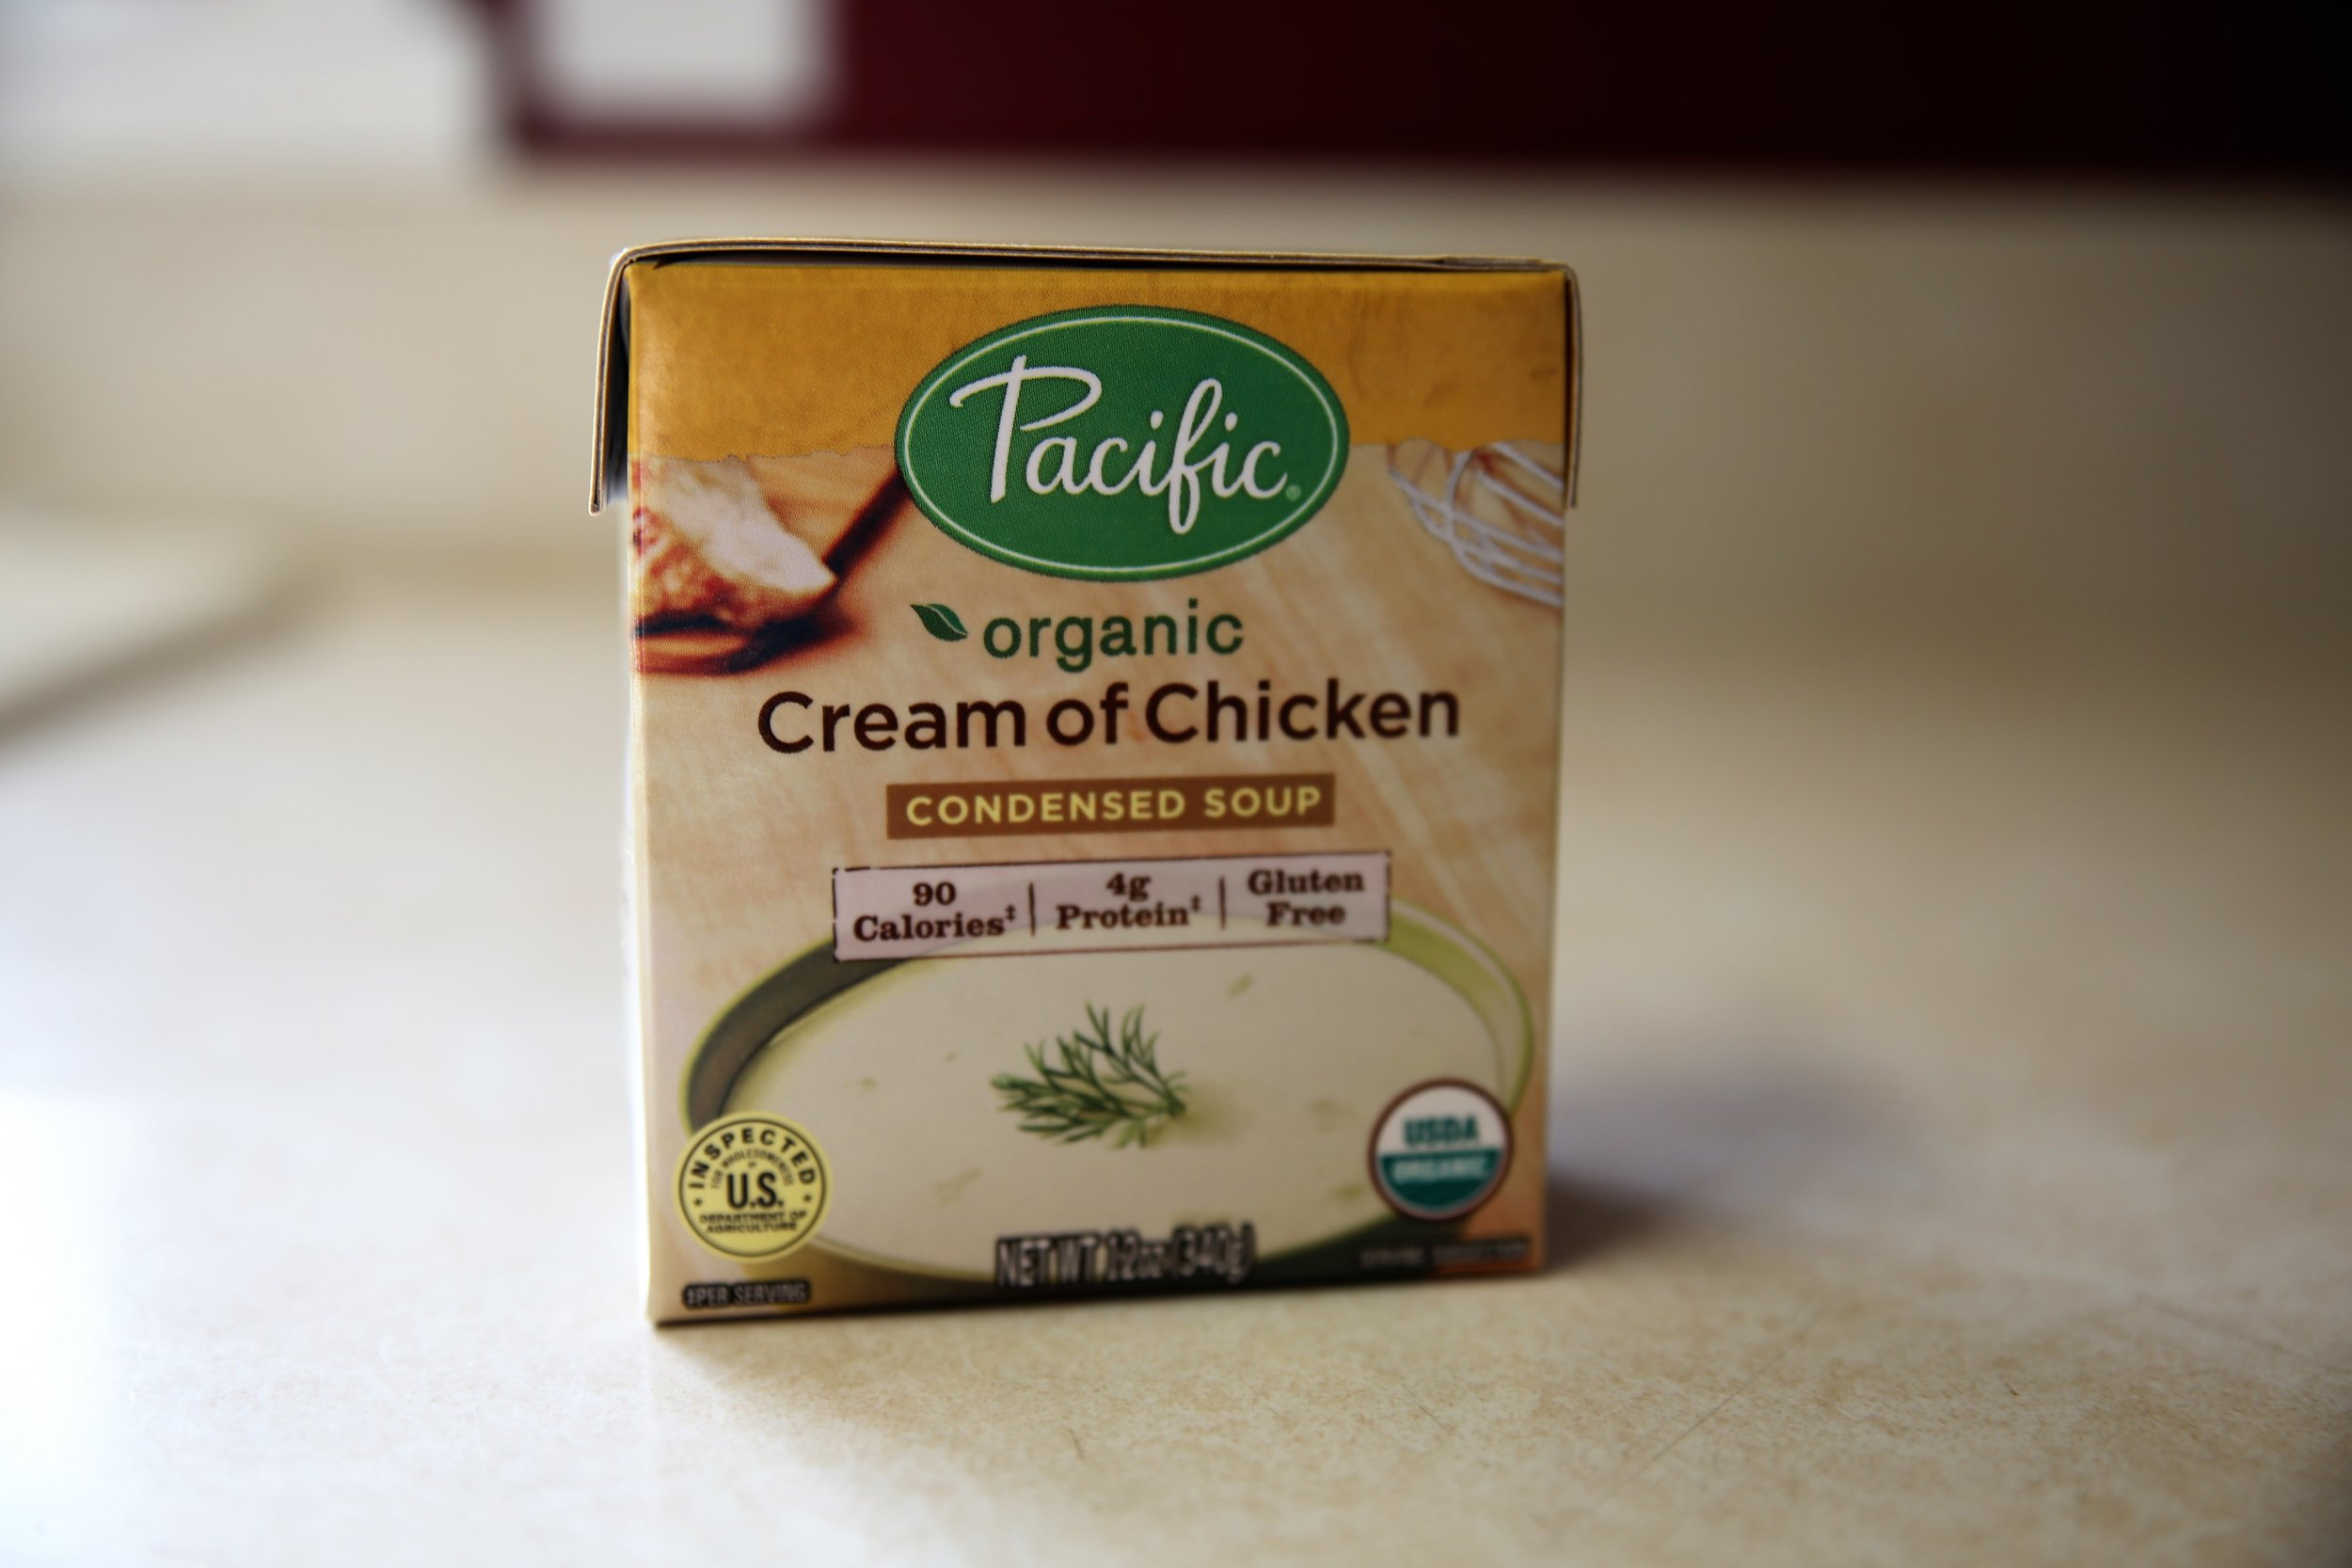 Cream of Chicken Soup - We don't use this a ton, but we do love making Chicken Divan with this and the chickpea crumbs (above).This option by Pacific Foods is a much cleaner version compared to the kind I grew up with. Note: It's not grain free but it is gluten free.Best price again is Thrive Market online, but this brand is also available at Target, Whole Foods, and Fresh Thyme.